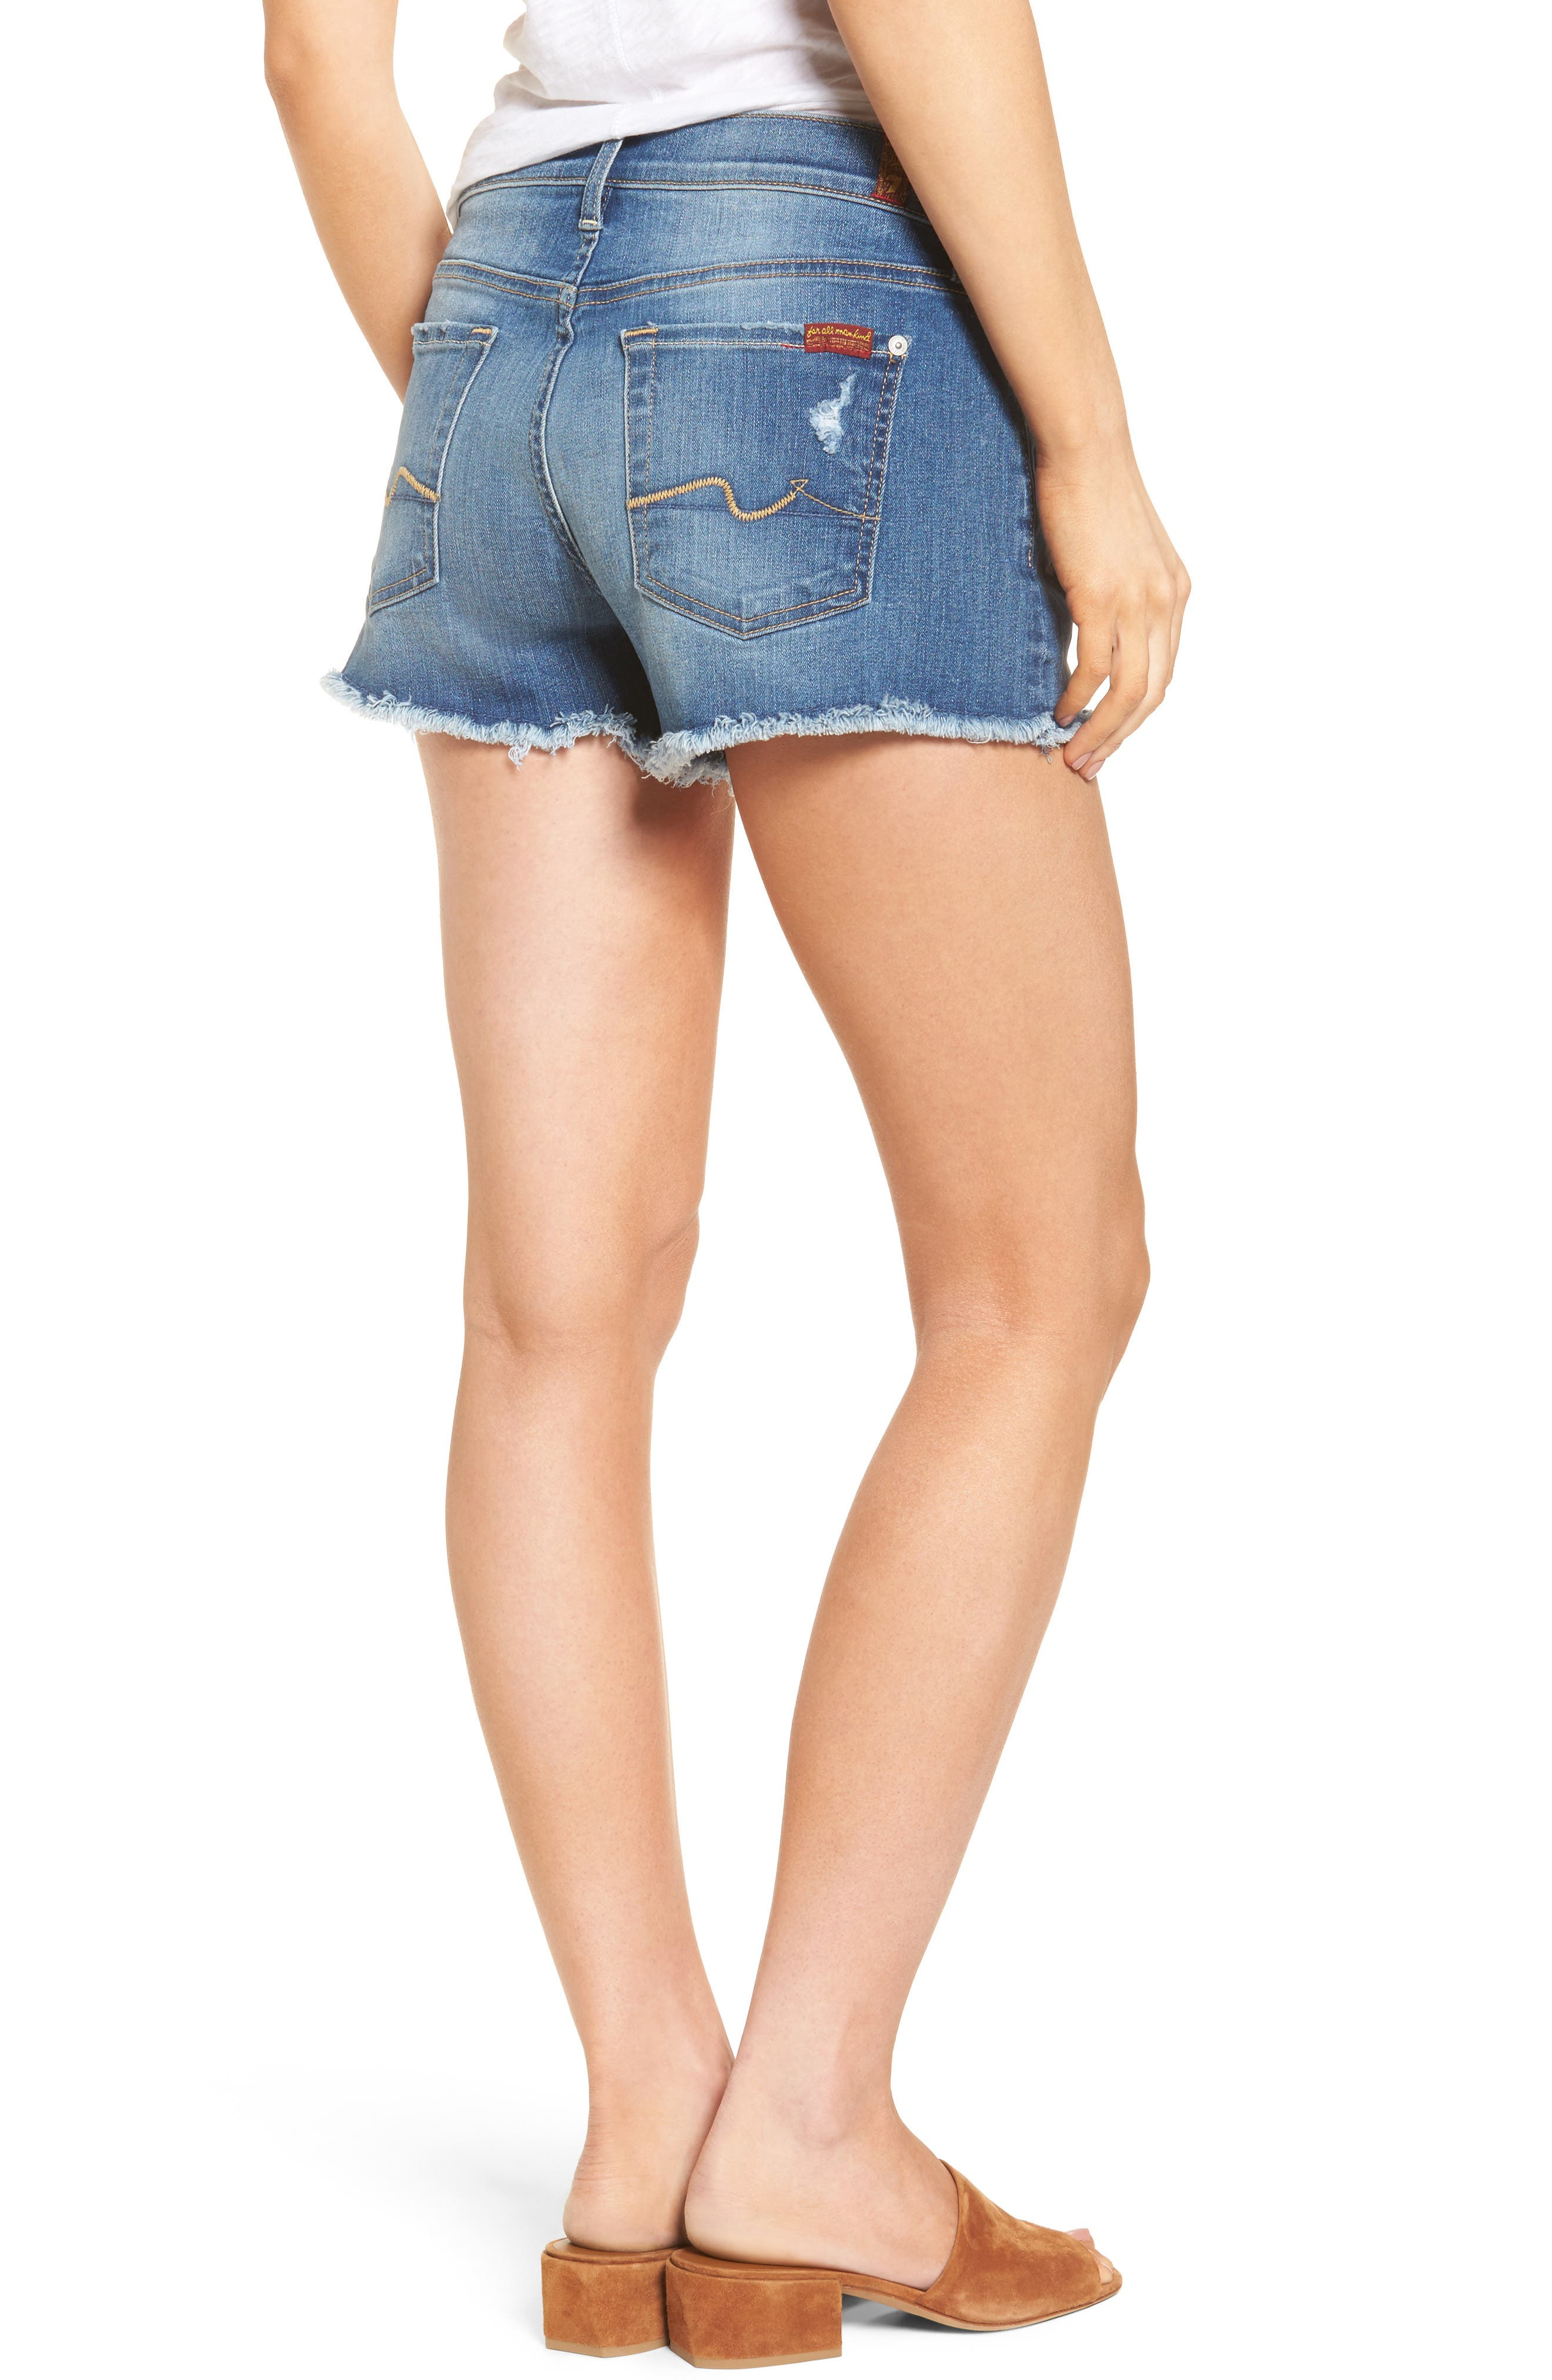 Alternate Image 2  - 7 For All Mankind® High Waist Cutoff Denim Shorts (Ocean Mist) (Nordstrom Exclusive Color)